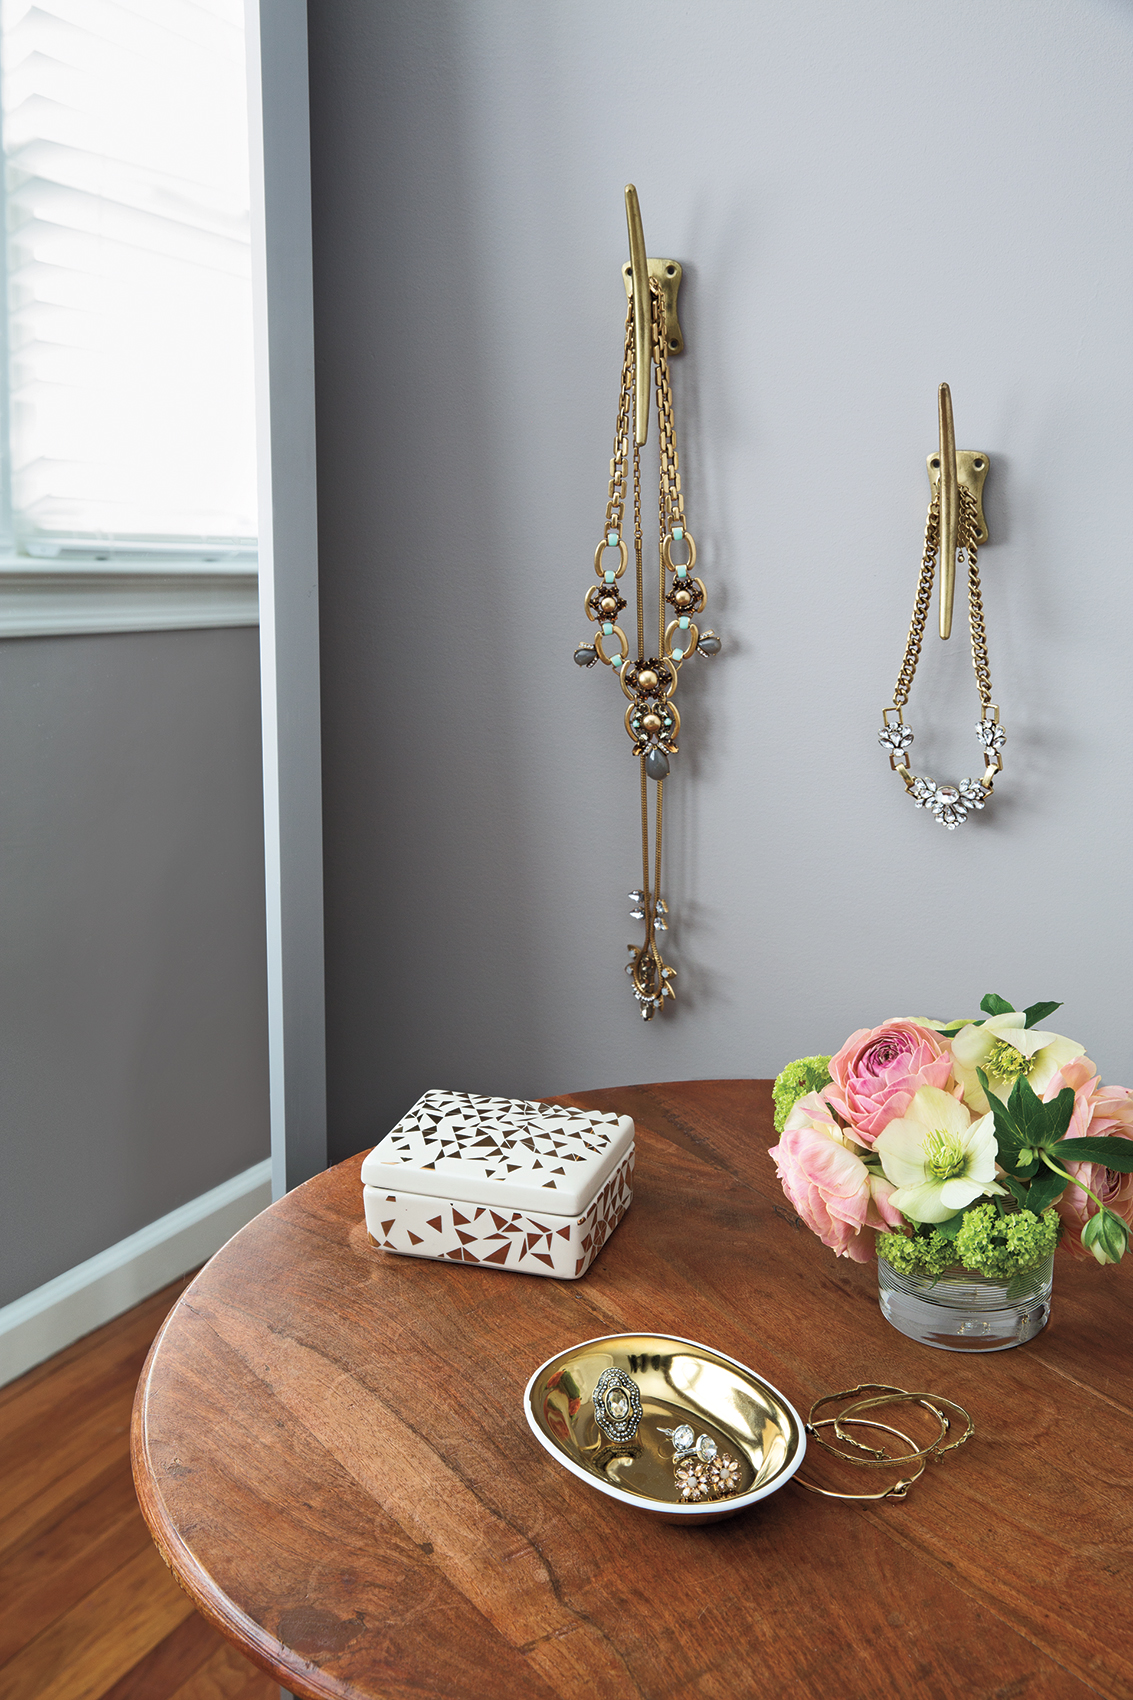 Jewelry hanging neatly on wall